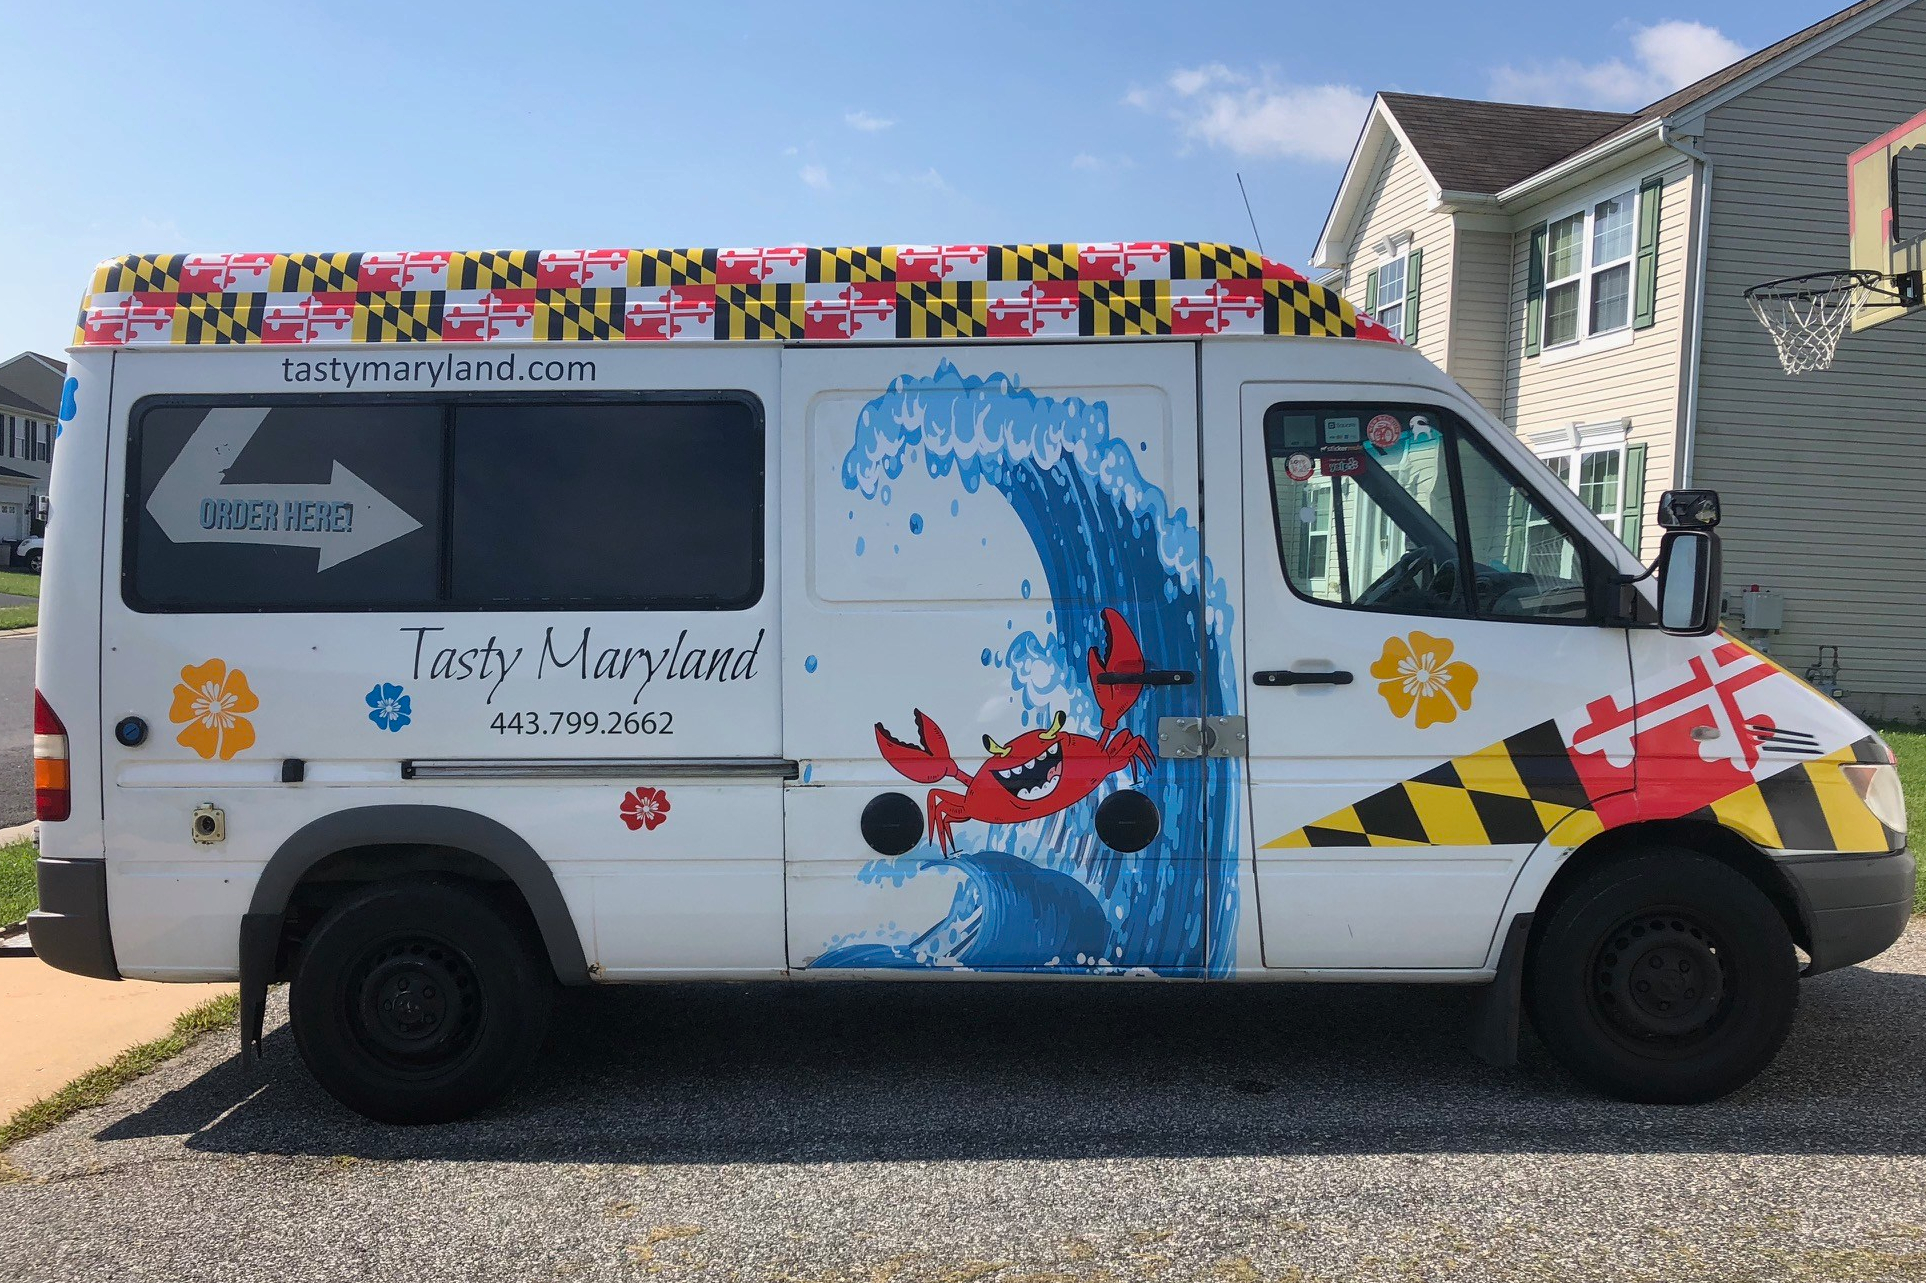 Tasty Maryland image